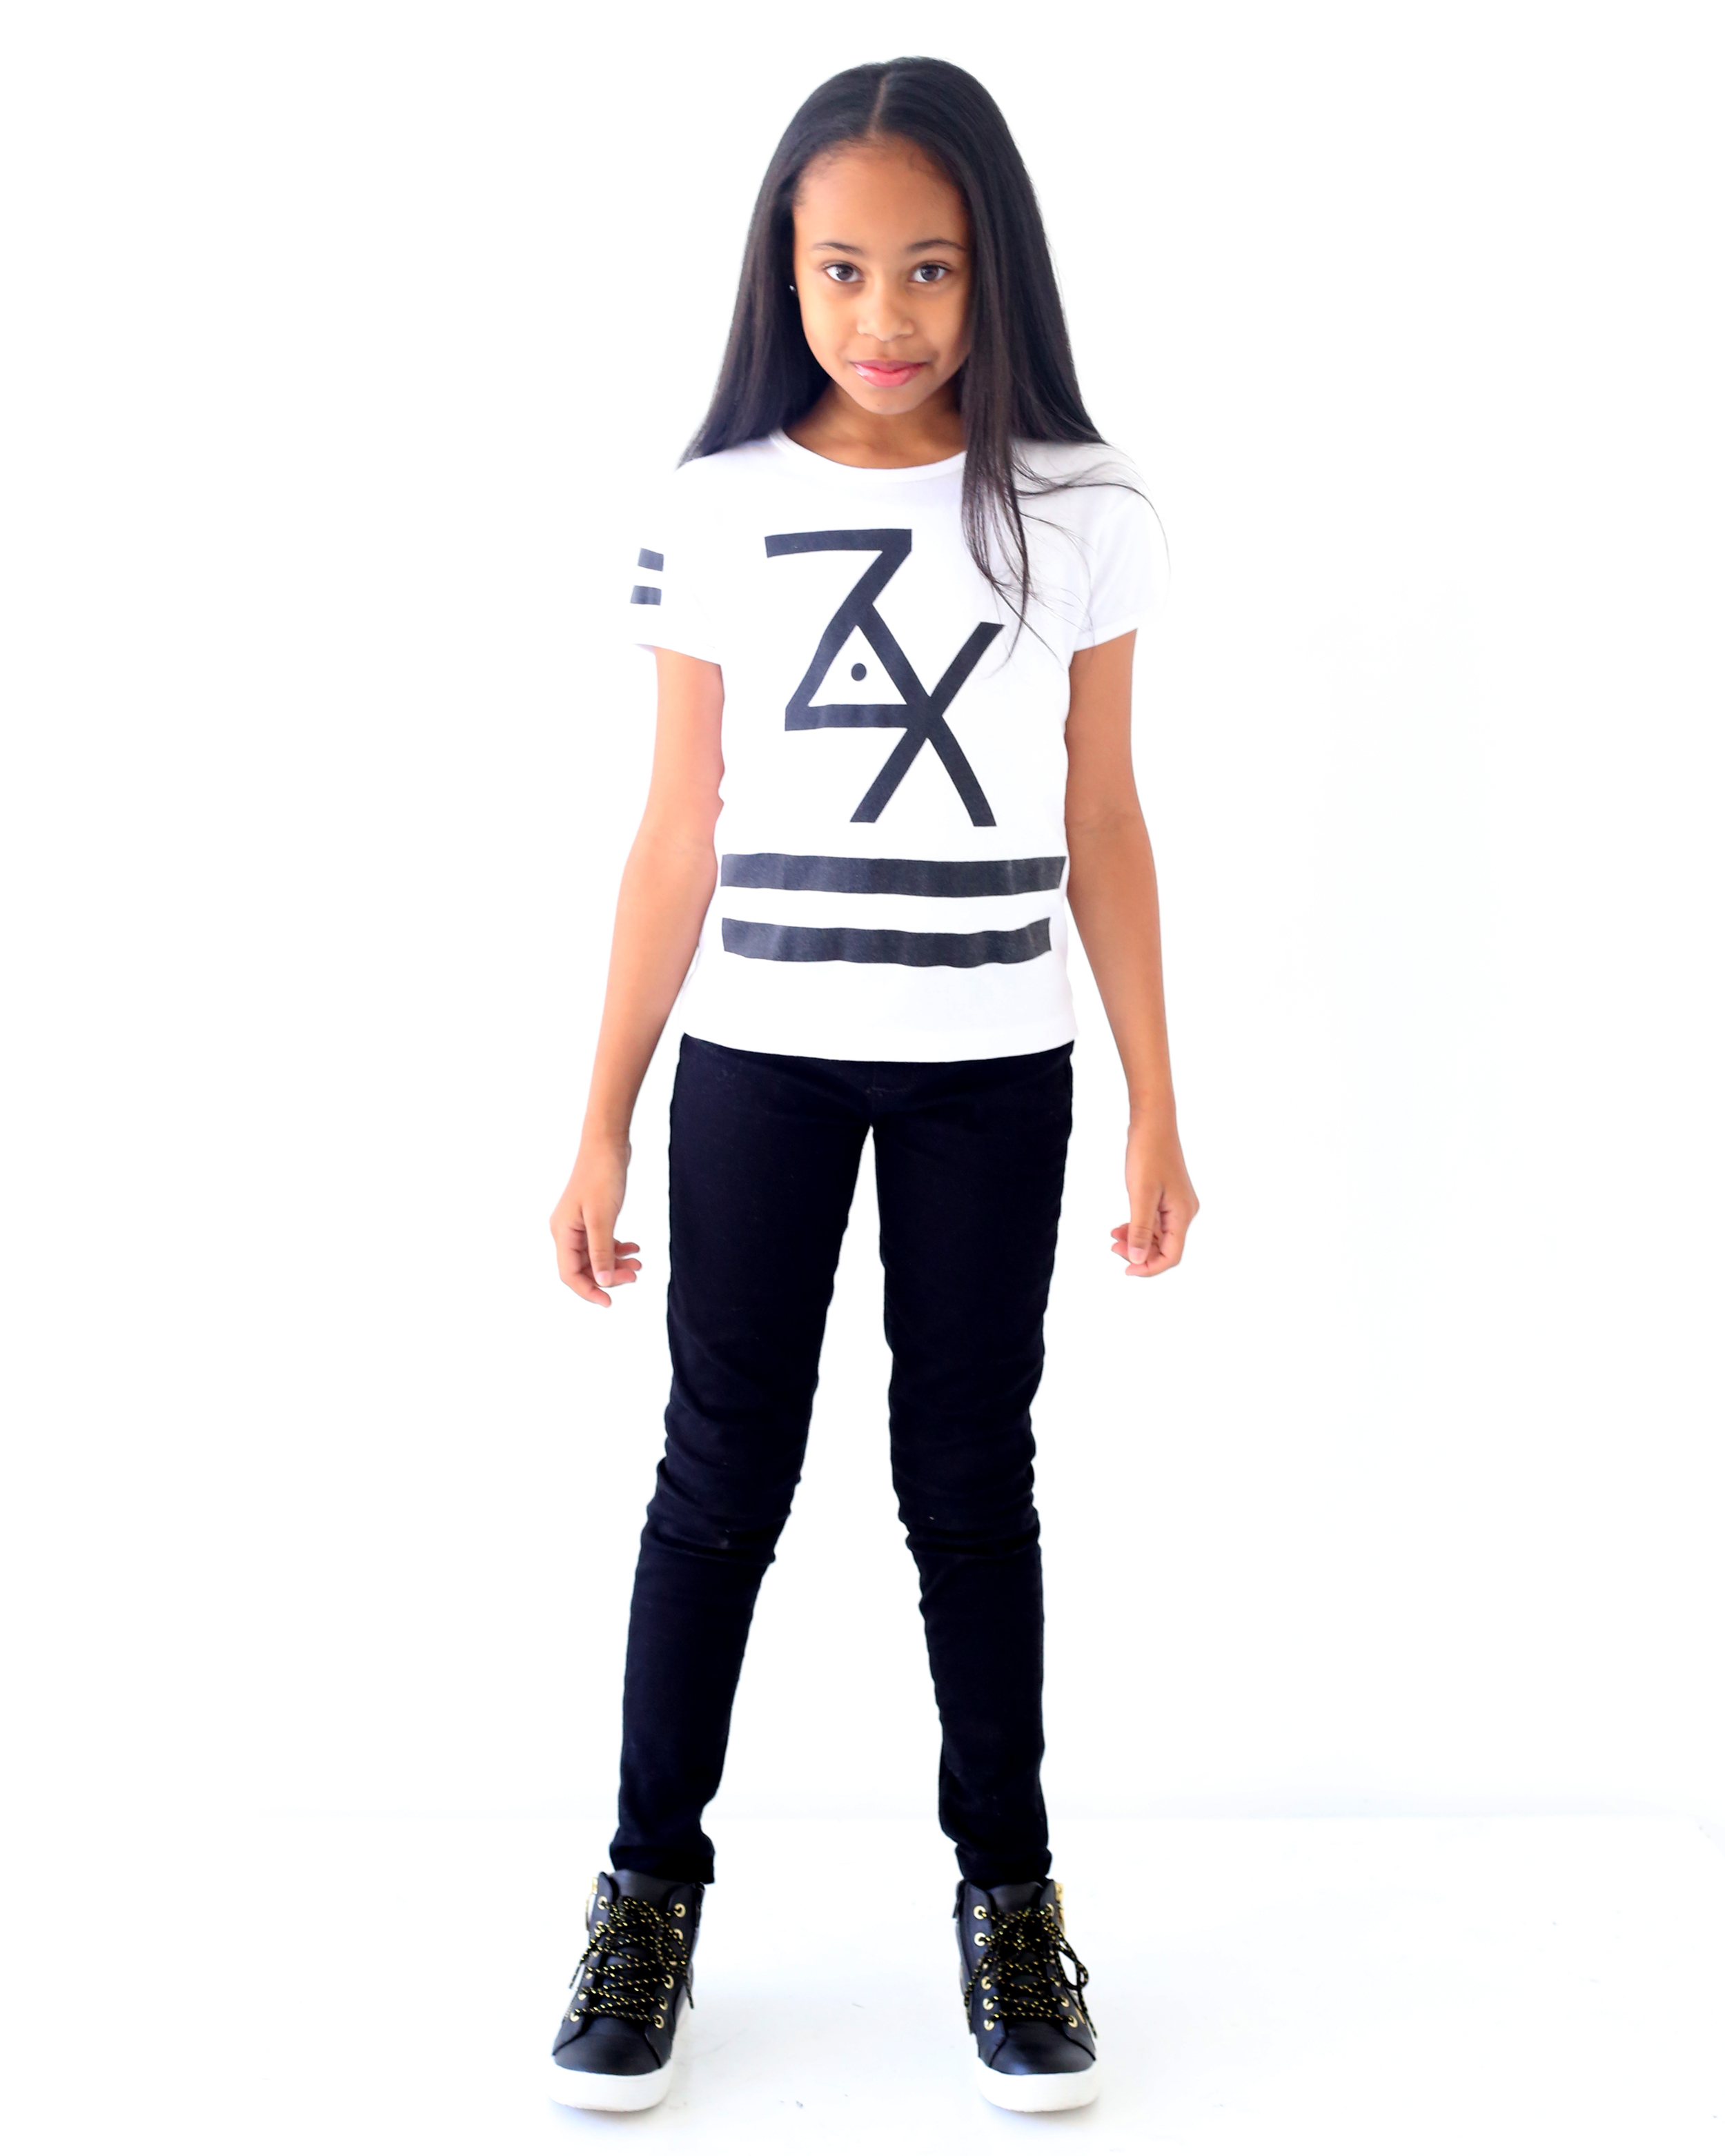 This is the costume for the performance. ZEYX shirt, black bottoms, and black sneakers. Teen shirts cost $30, children shirts cost $25. Shirts only need to be purchased once. If you have a financial difficulty paying for the shirt, please speak with  Jo  or  Jerzey  about a subsidized rate.